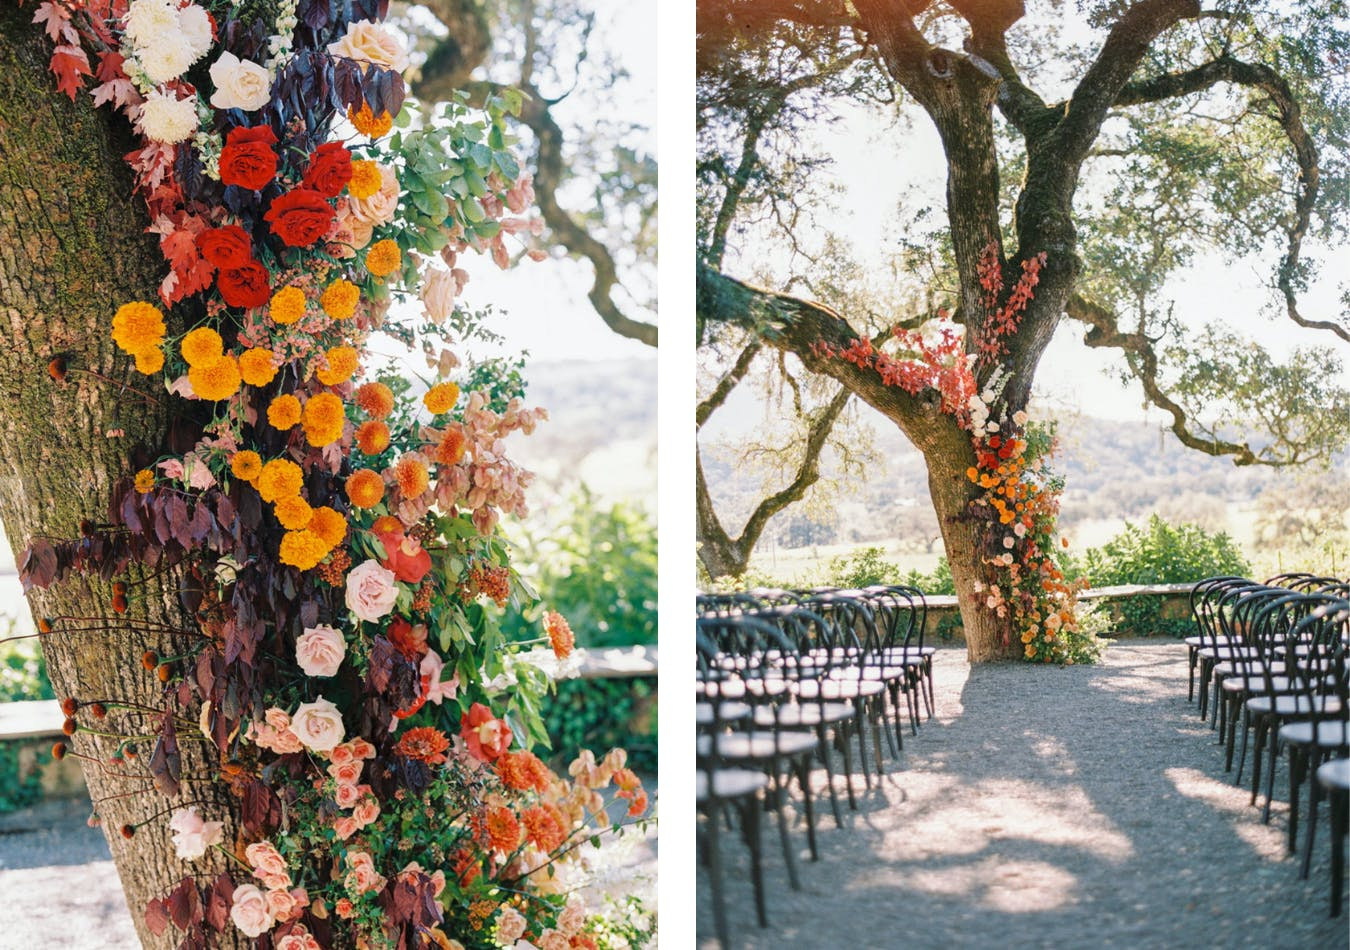 Ancient oak tree covered in bright floral cascade down trunk for wedding ceremony backdrop   PartySlate